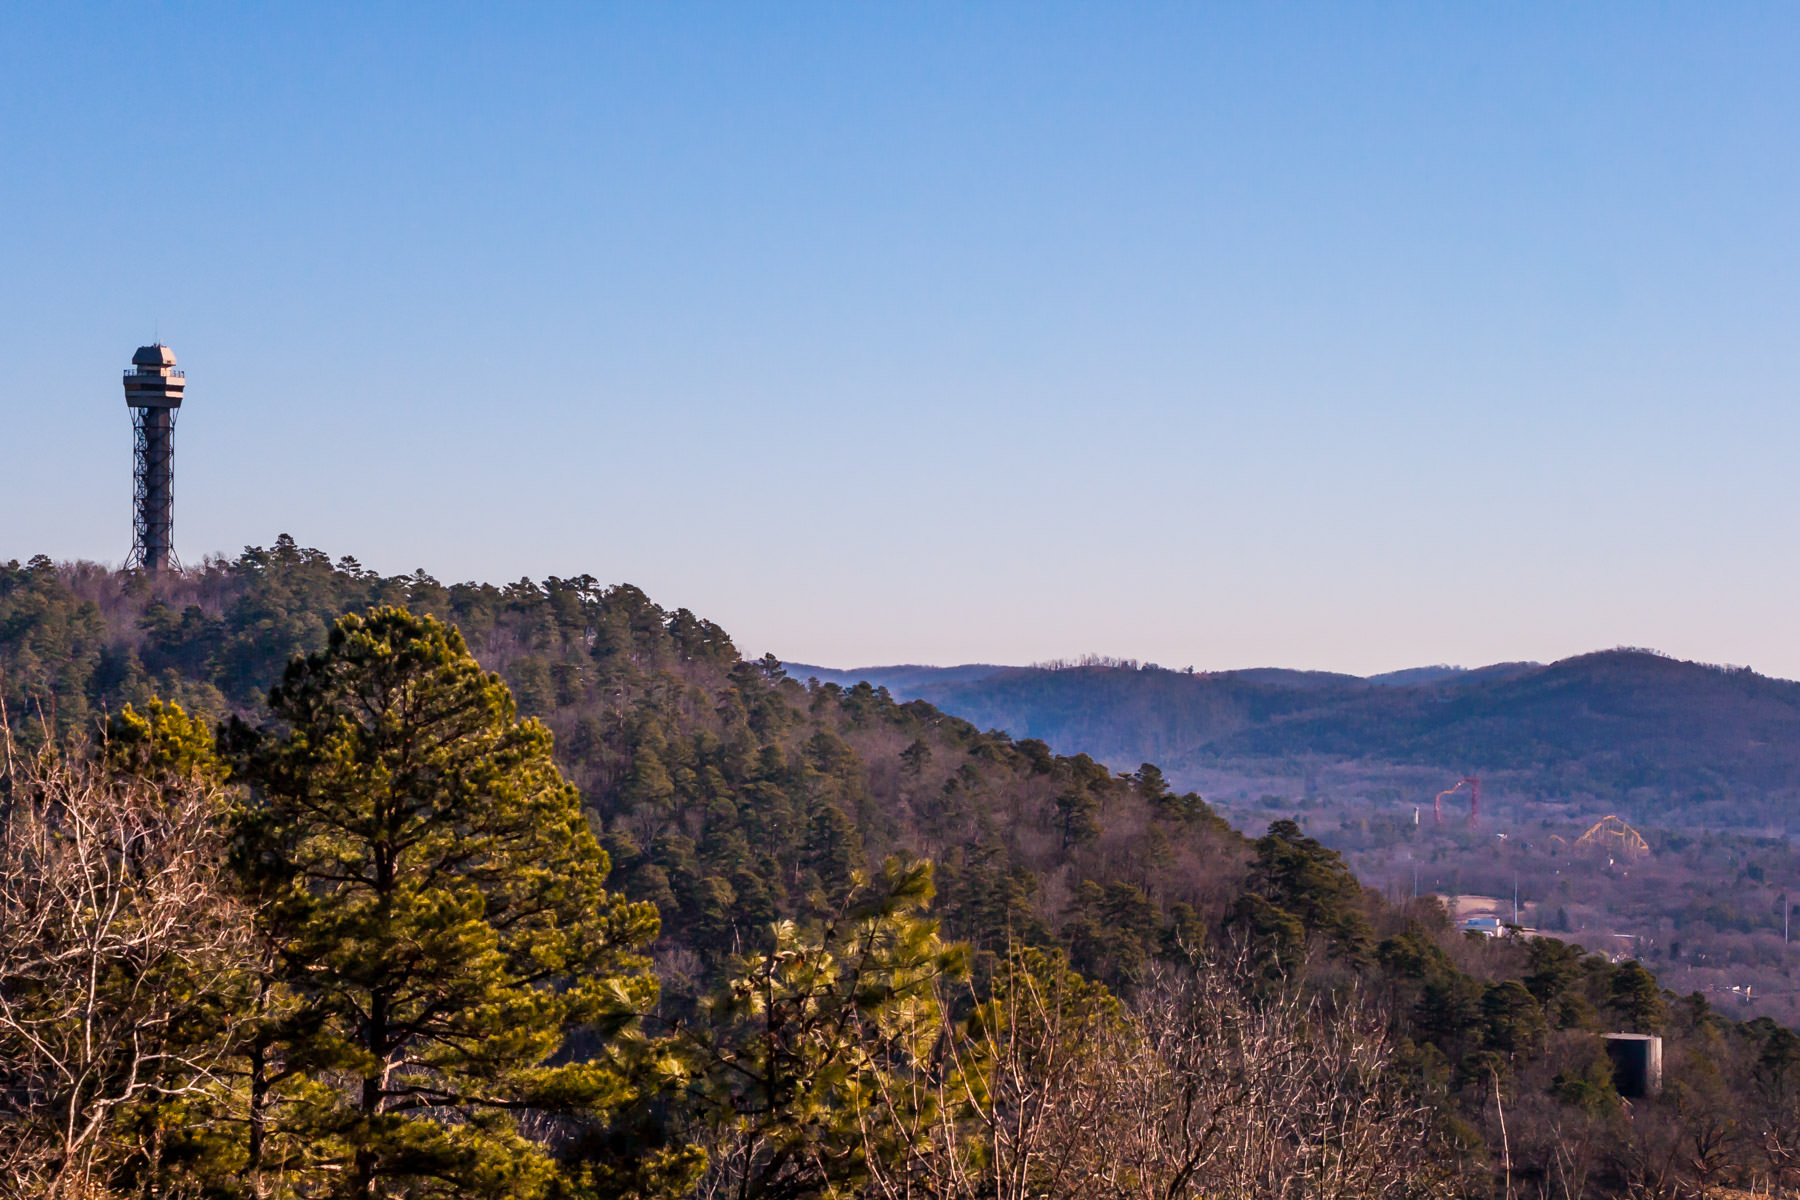 An observation tower in the hills above Hot Springs, Arkansas.